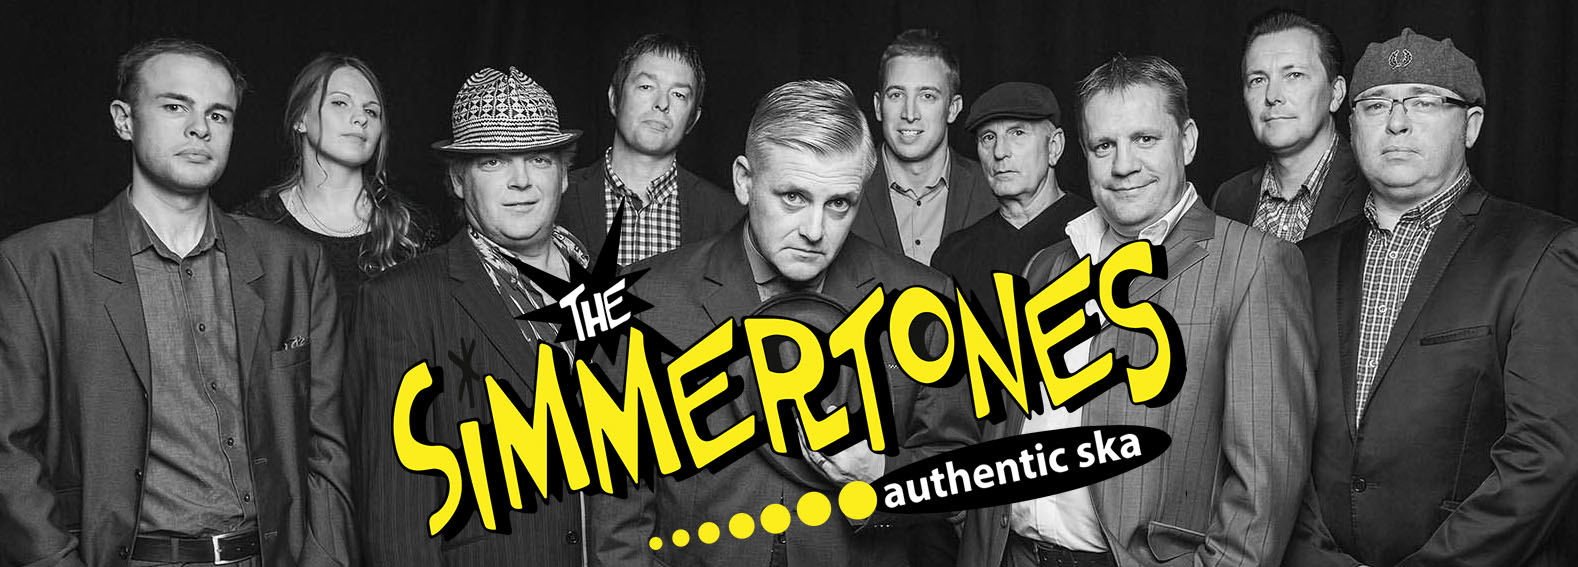 The Simmertones Authentic Skacription